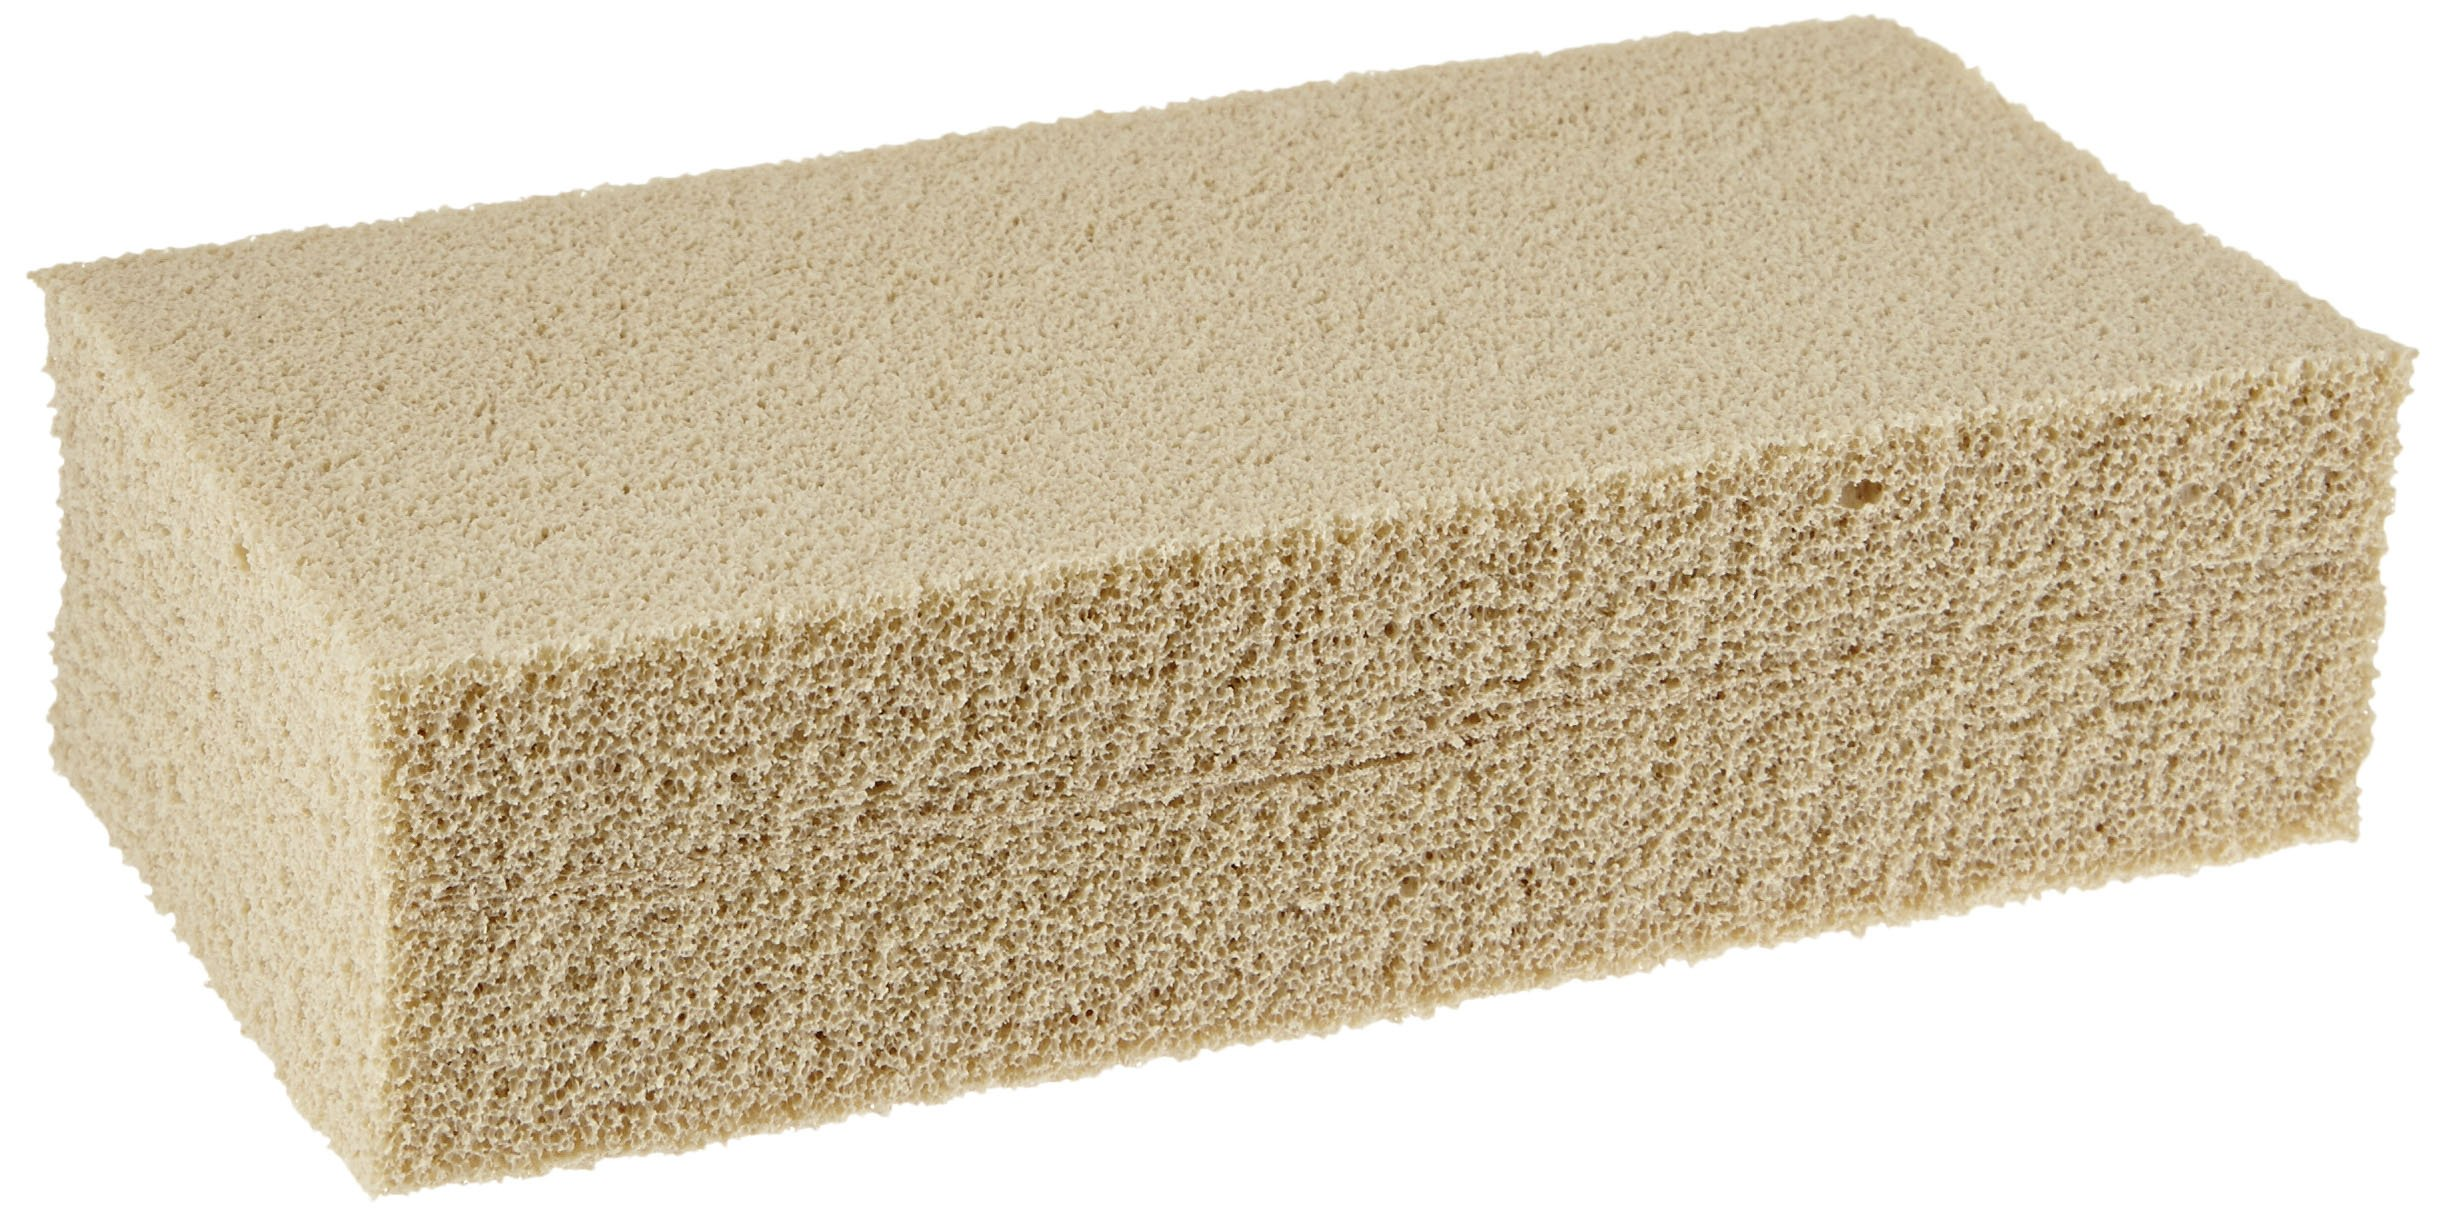 Impact 7100 Chemically Treated Sponge, 6-1/4'' Length x 3'' Width x 2'' Height, Beige (Case of 36)